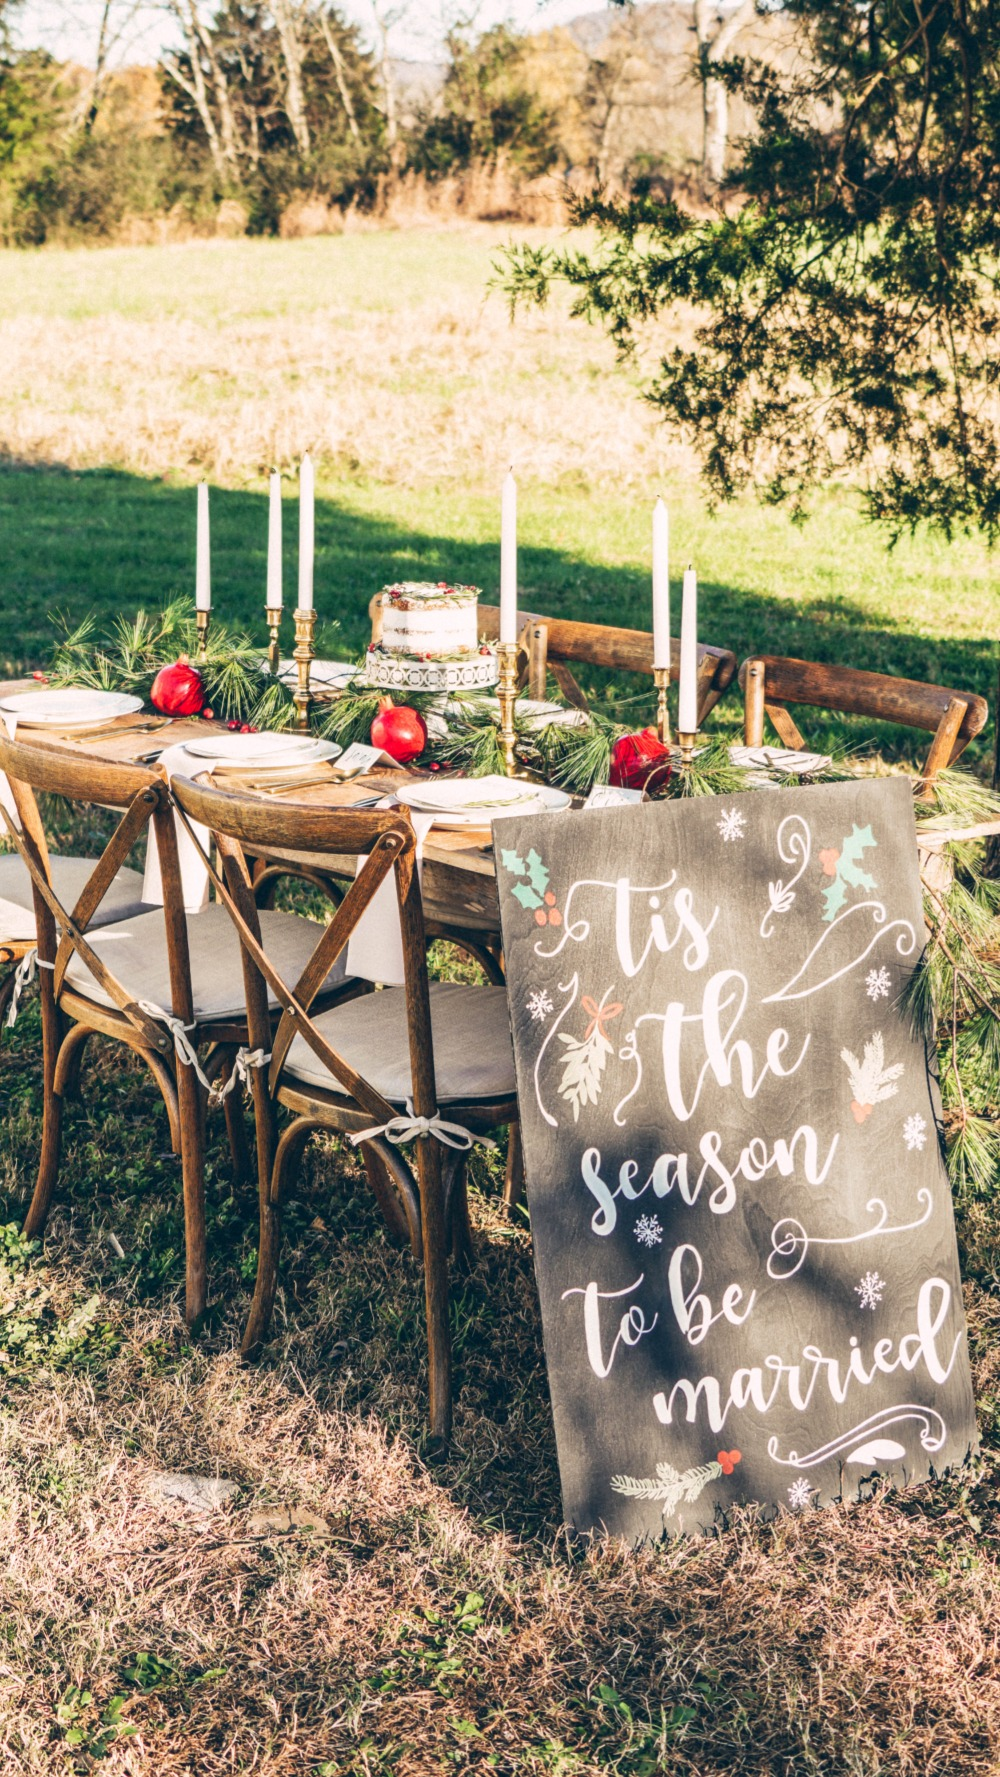 Trending How To Plan A Cozy Christmas Wedding Any Month Of The Year